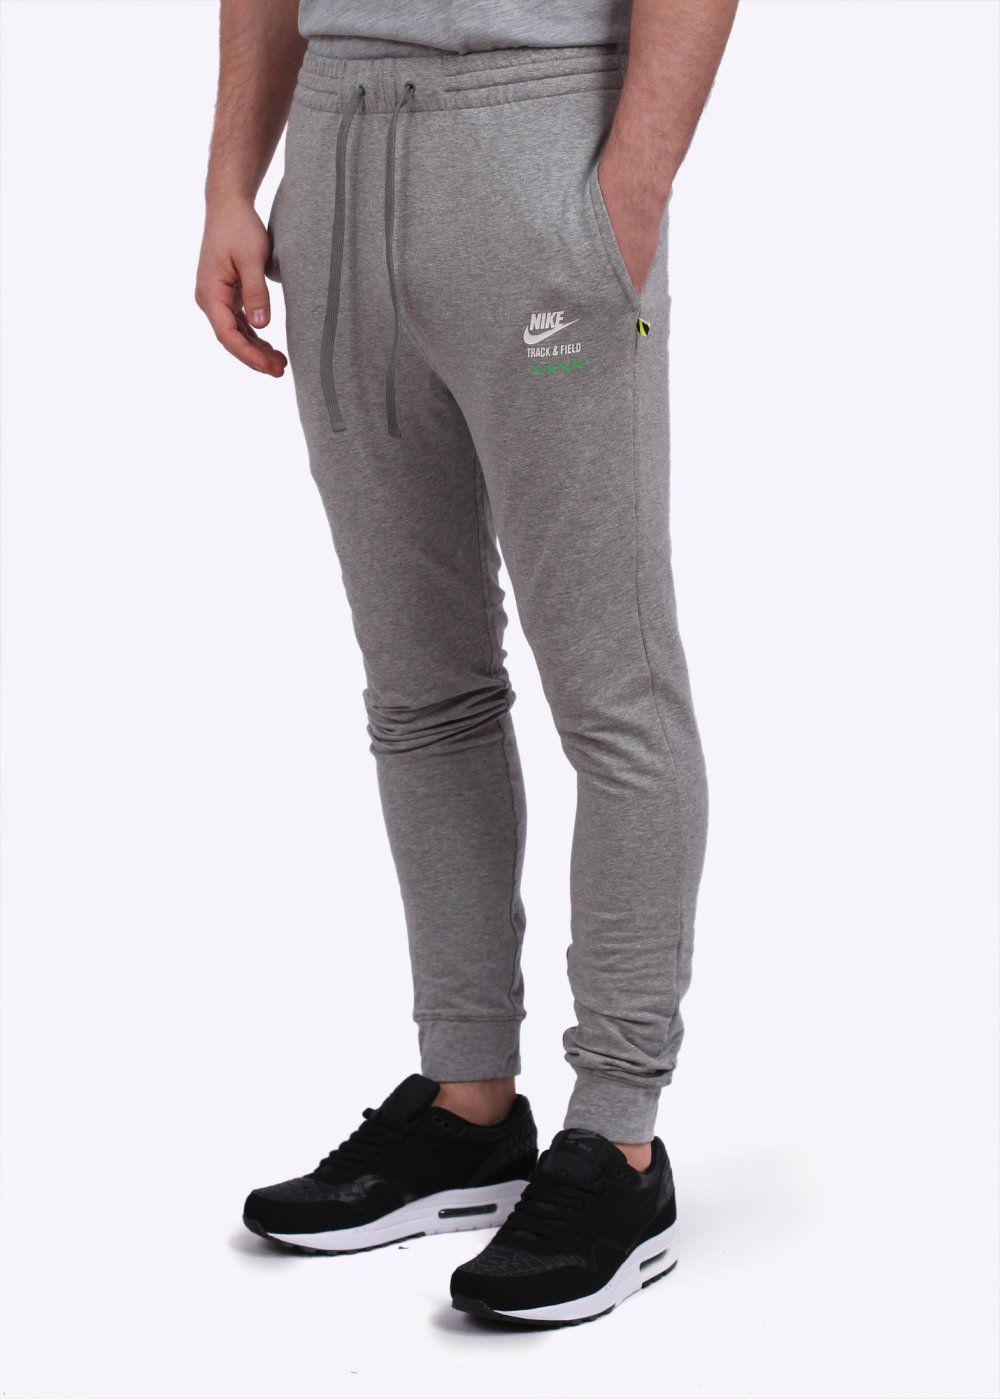 nike sportswear ntf slim jogging pant light grey. Black Bedroom Furniture Sets. Home Design Ideas